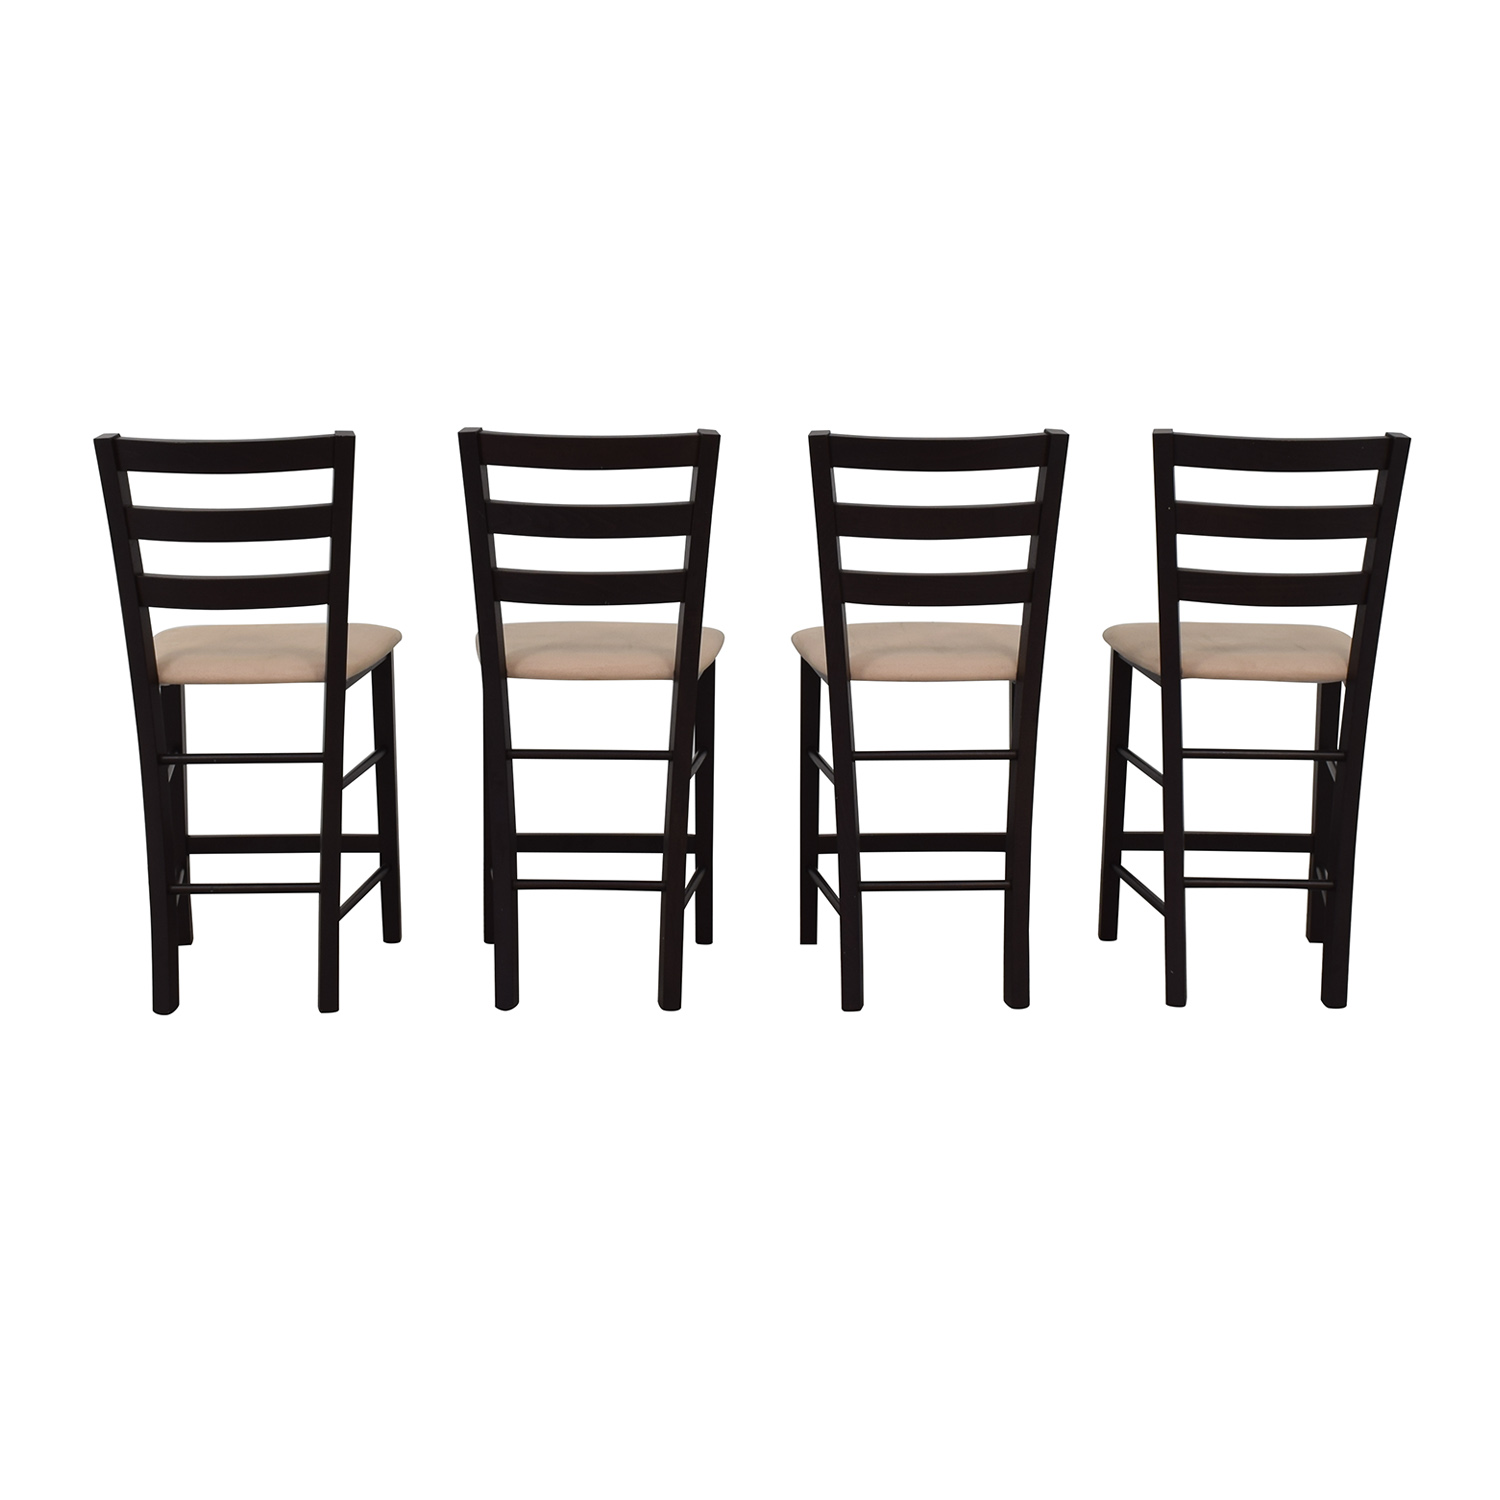 Macy's Cafe Latte Counter Height Bar Stools / Stools